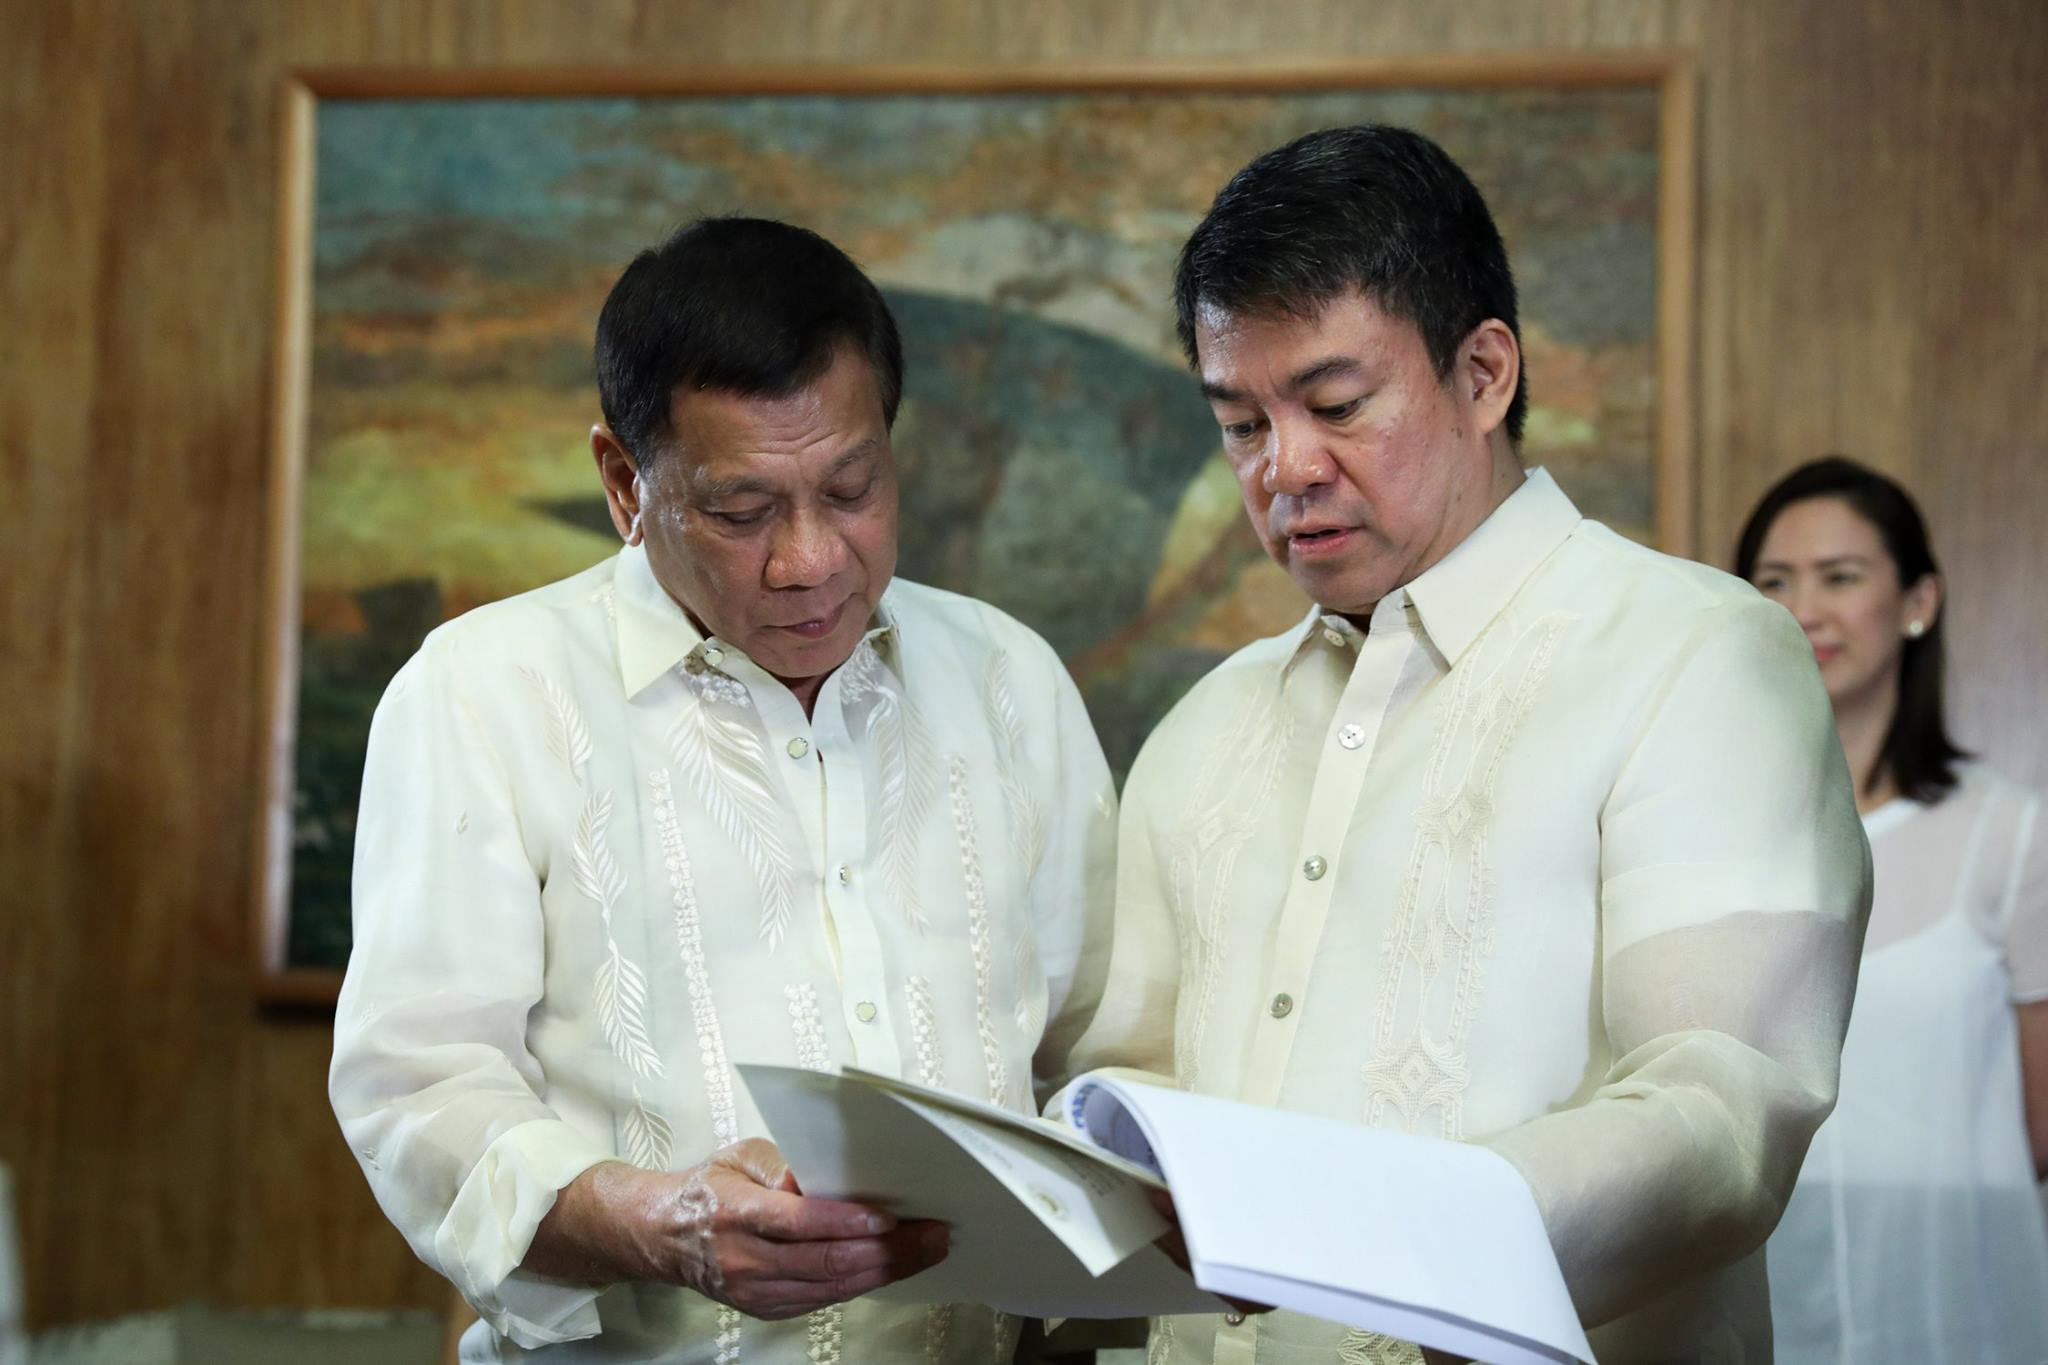 Speaker's attacks meant to weaken Senate, says Drilon